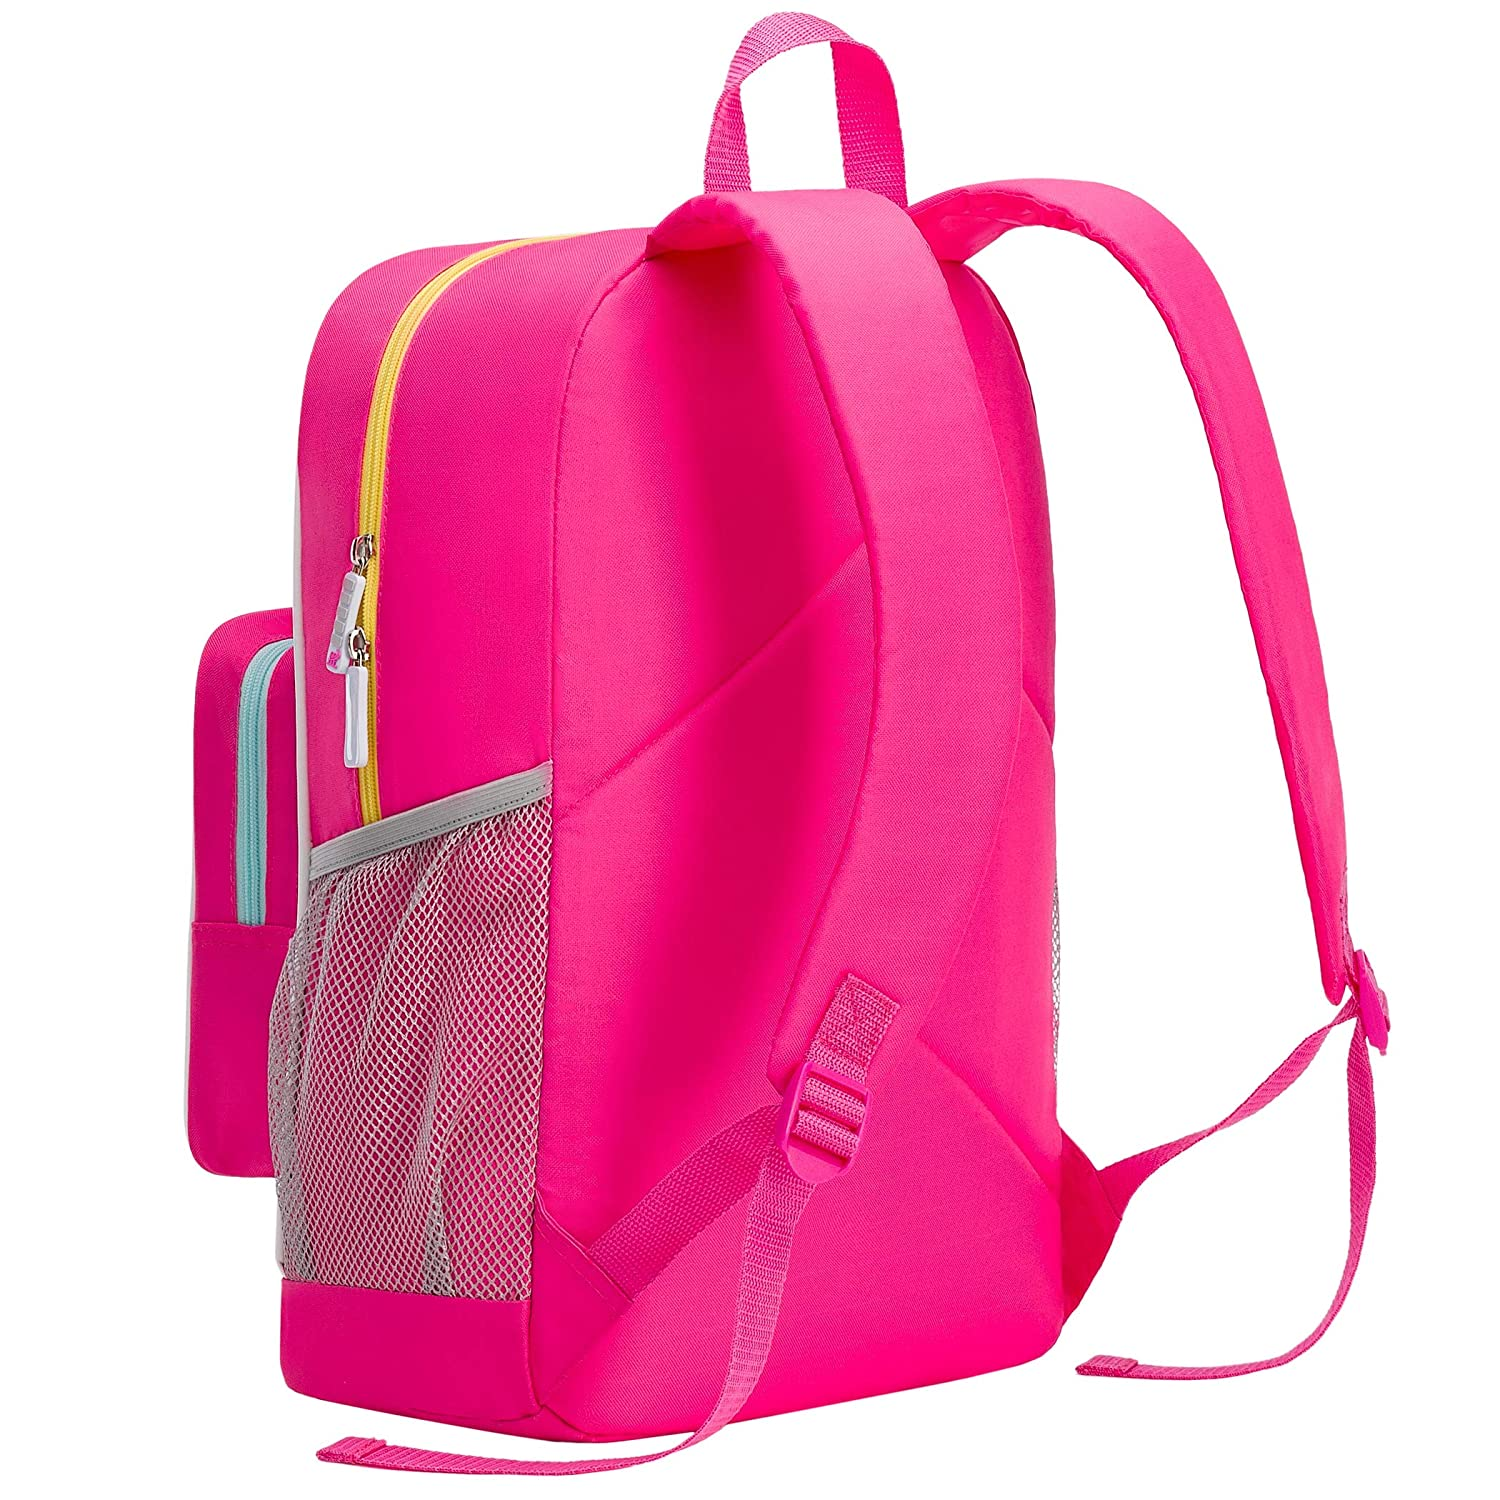 Pink Officially Licensed NFL Fanclub Backpack 18